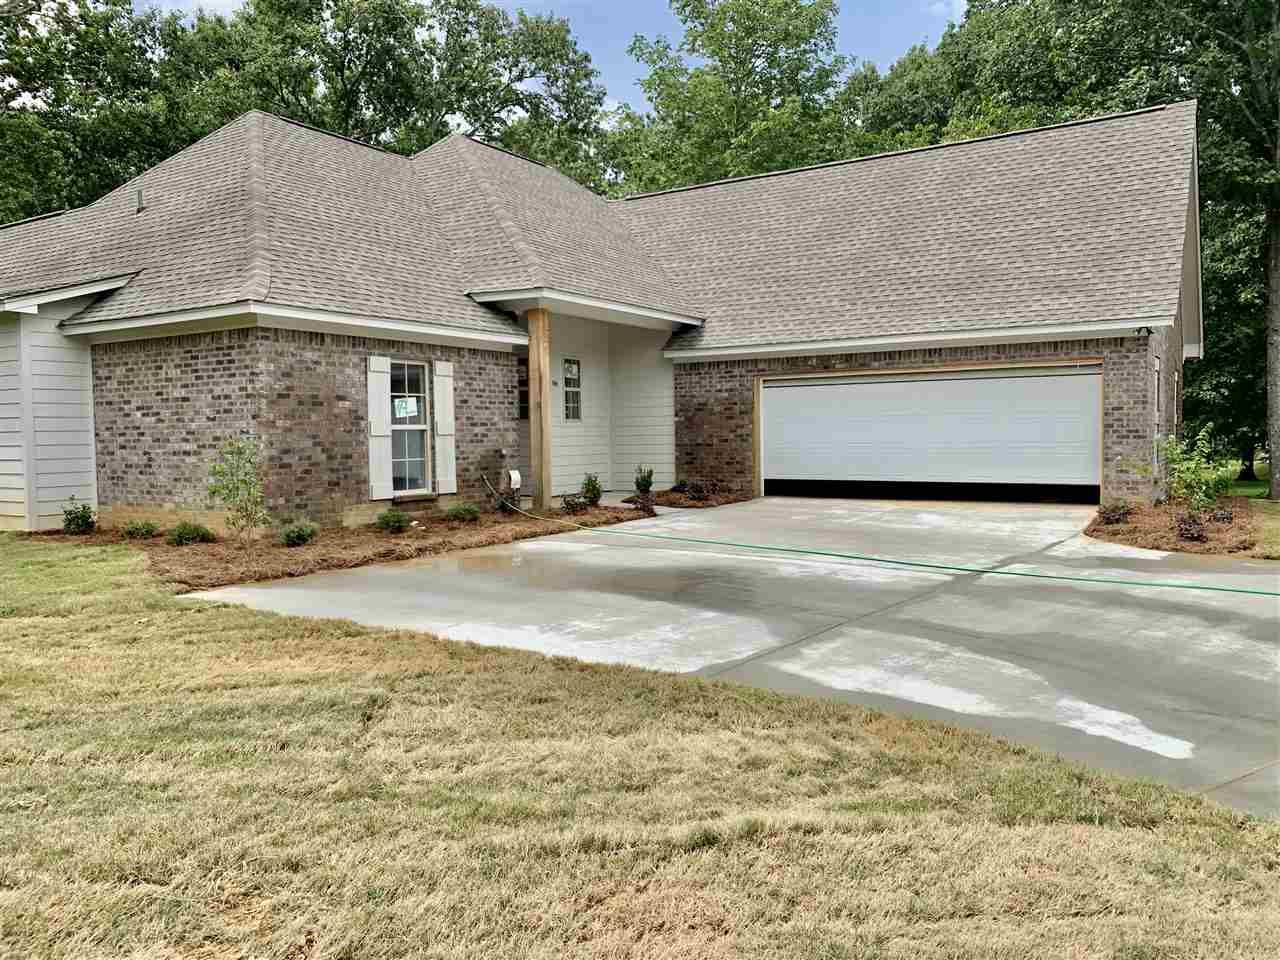 846 N DEERFIELD DR, Canton, MS 39046 - MLS#: 329971